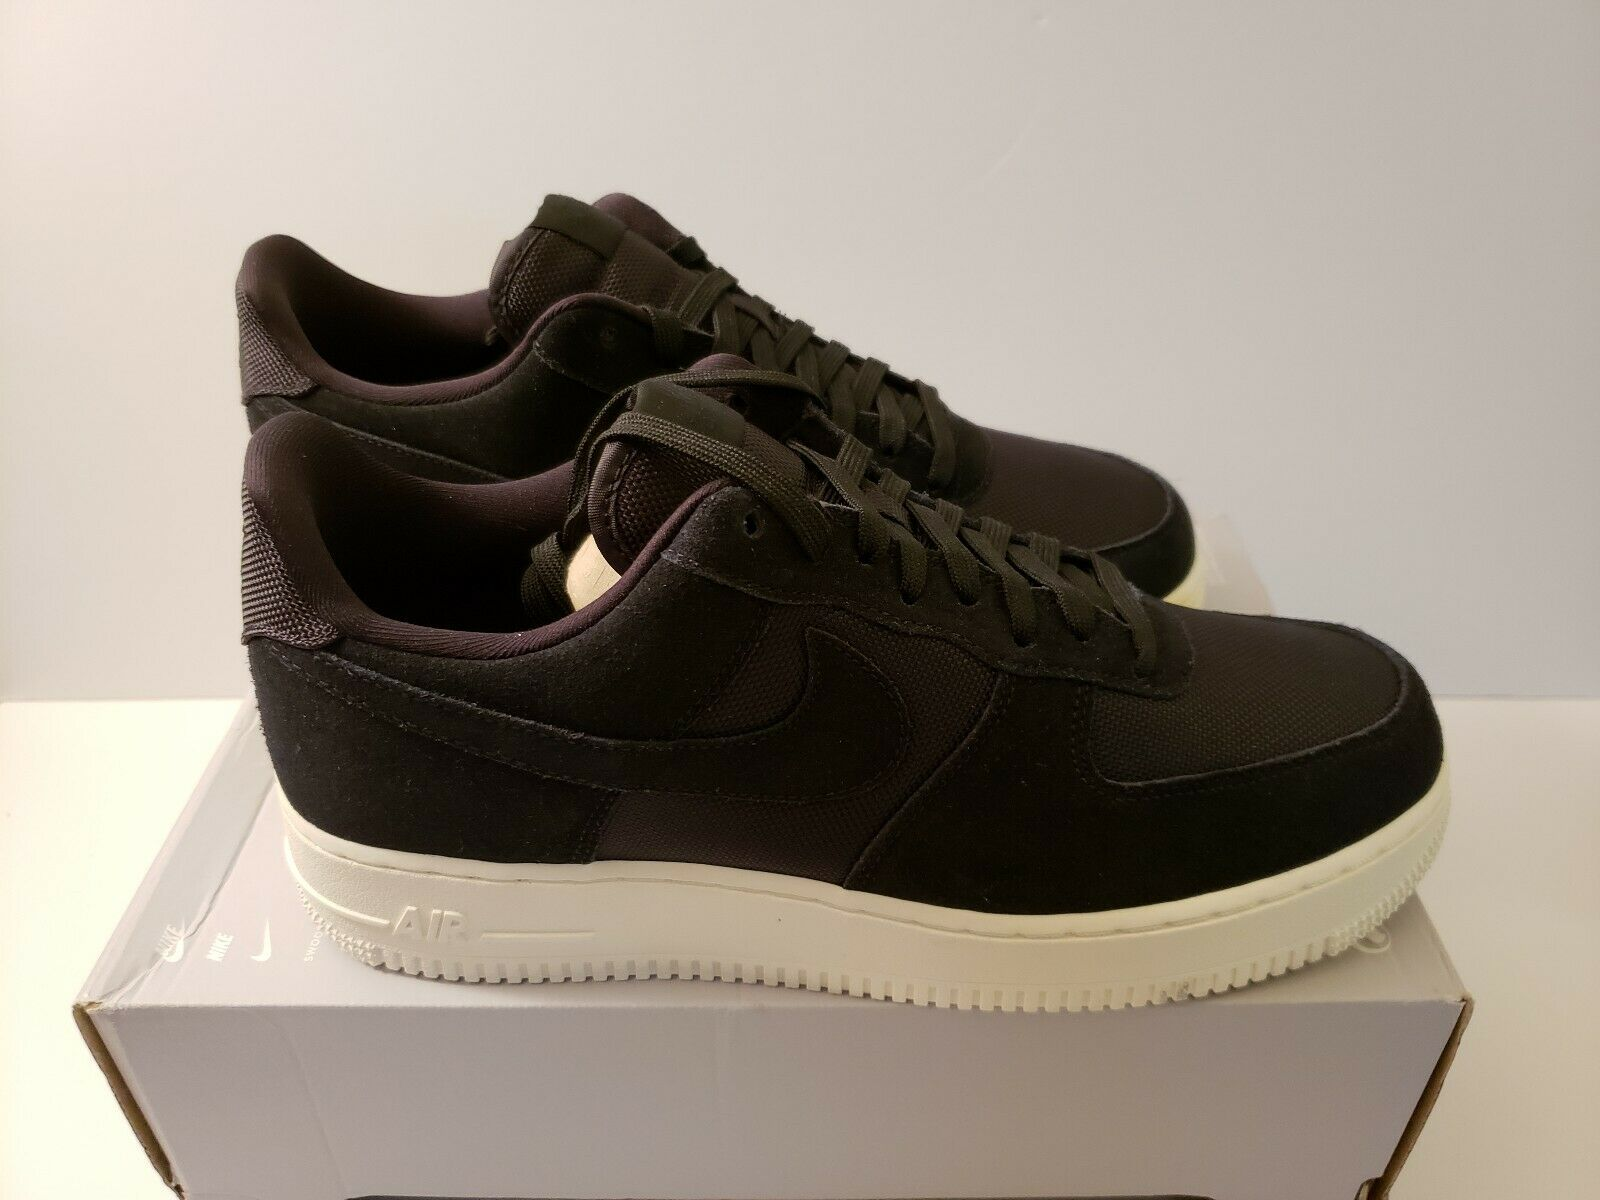 296314a2fa Nike 1 '07 1 Size 10.5 Black White AO2409 001 Air Force nnpcwu2590 ...